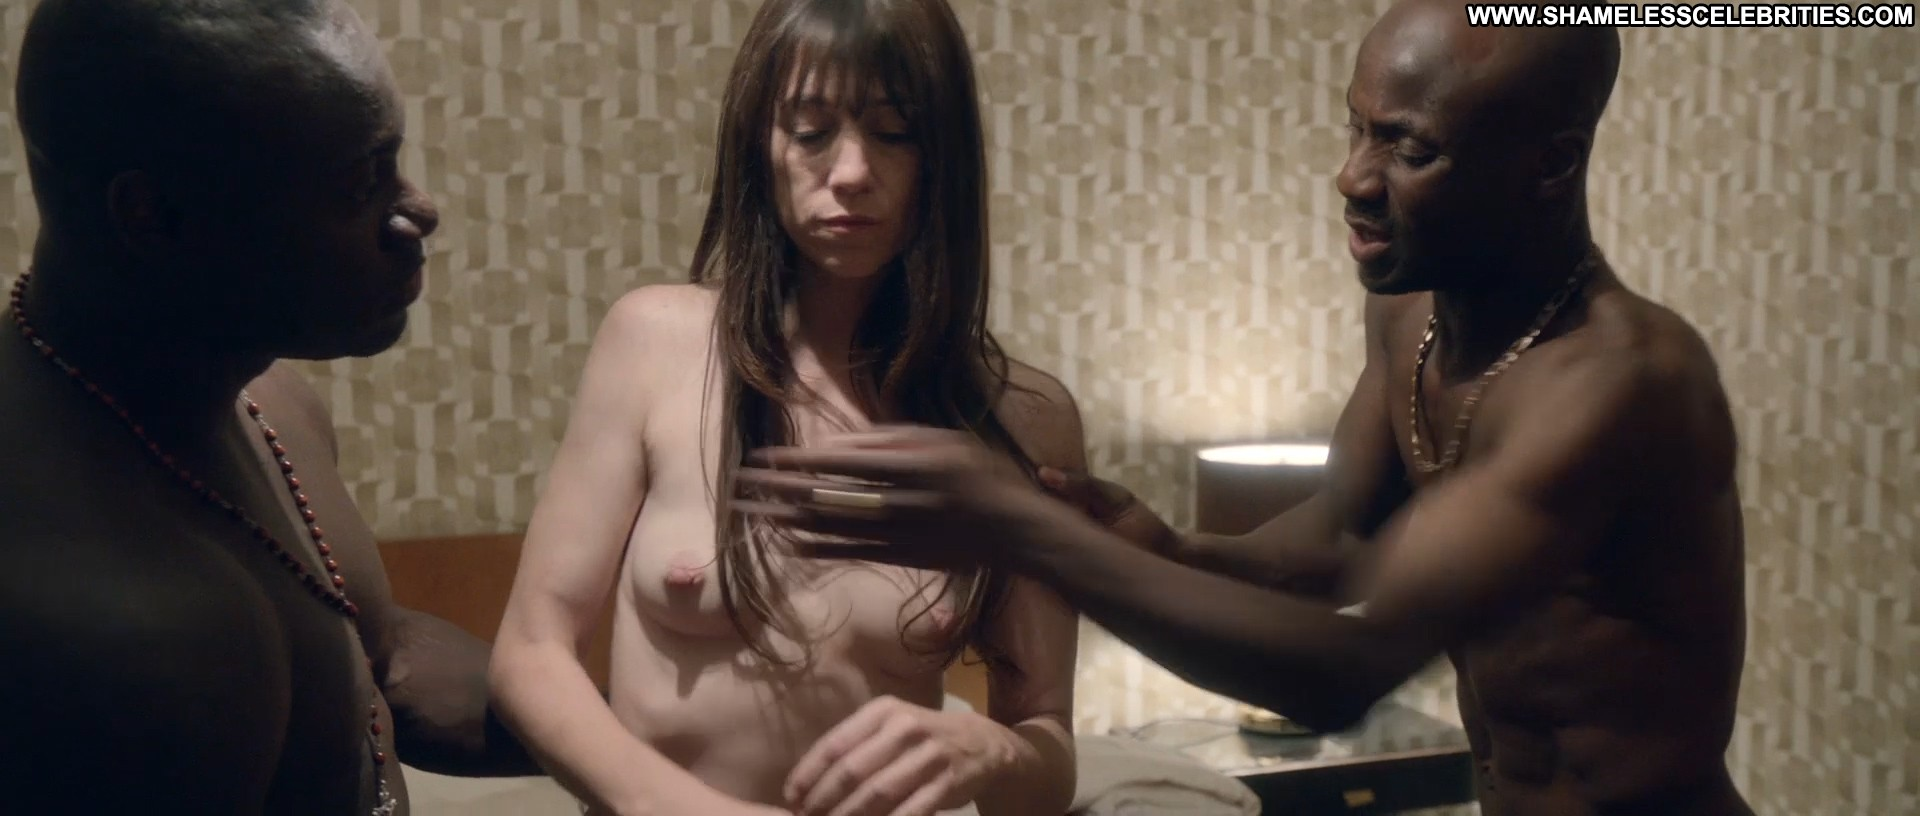 image Charlotte gainsbourg cement clip 2